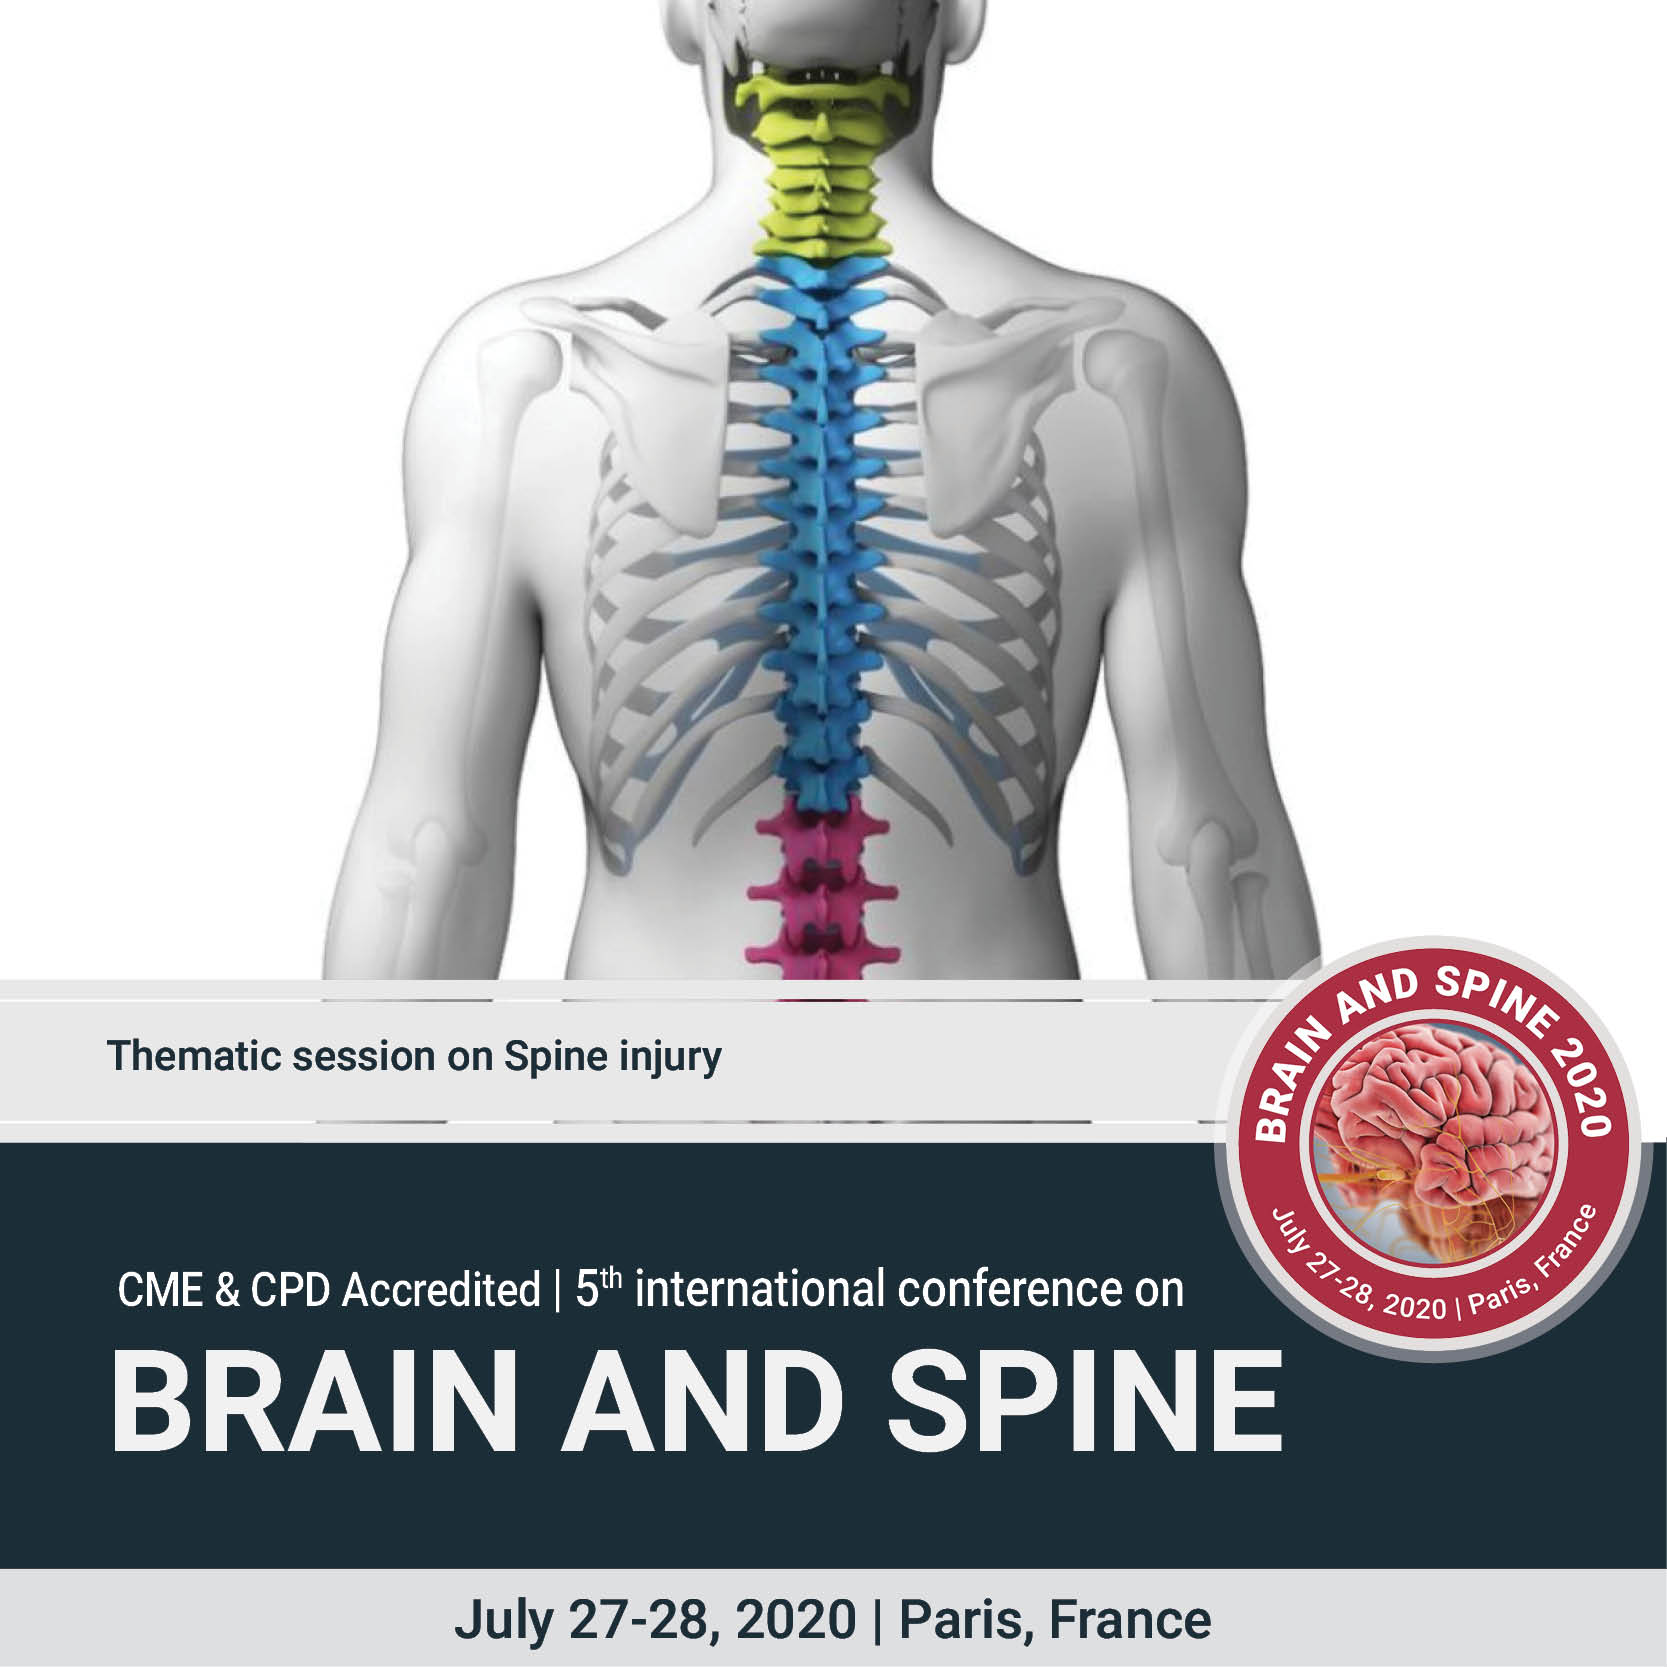 SPINE AND SPINAL DISORDERS Photo